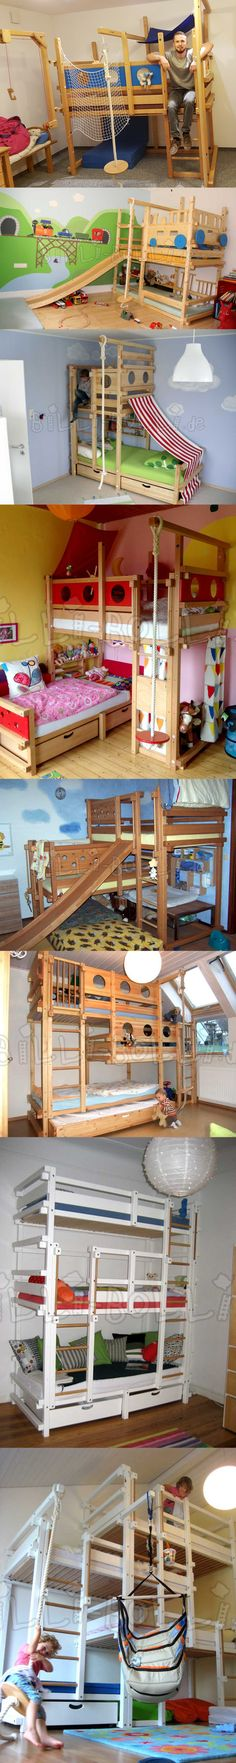 9gag jobs: I produce bunk beds for kids